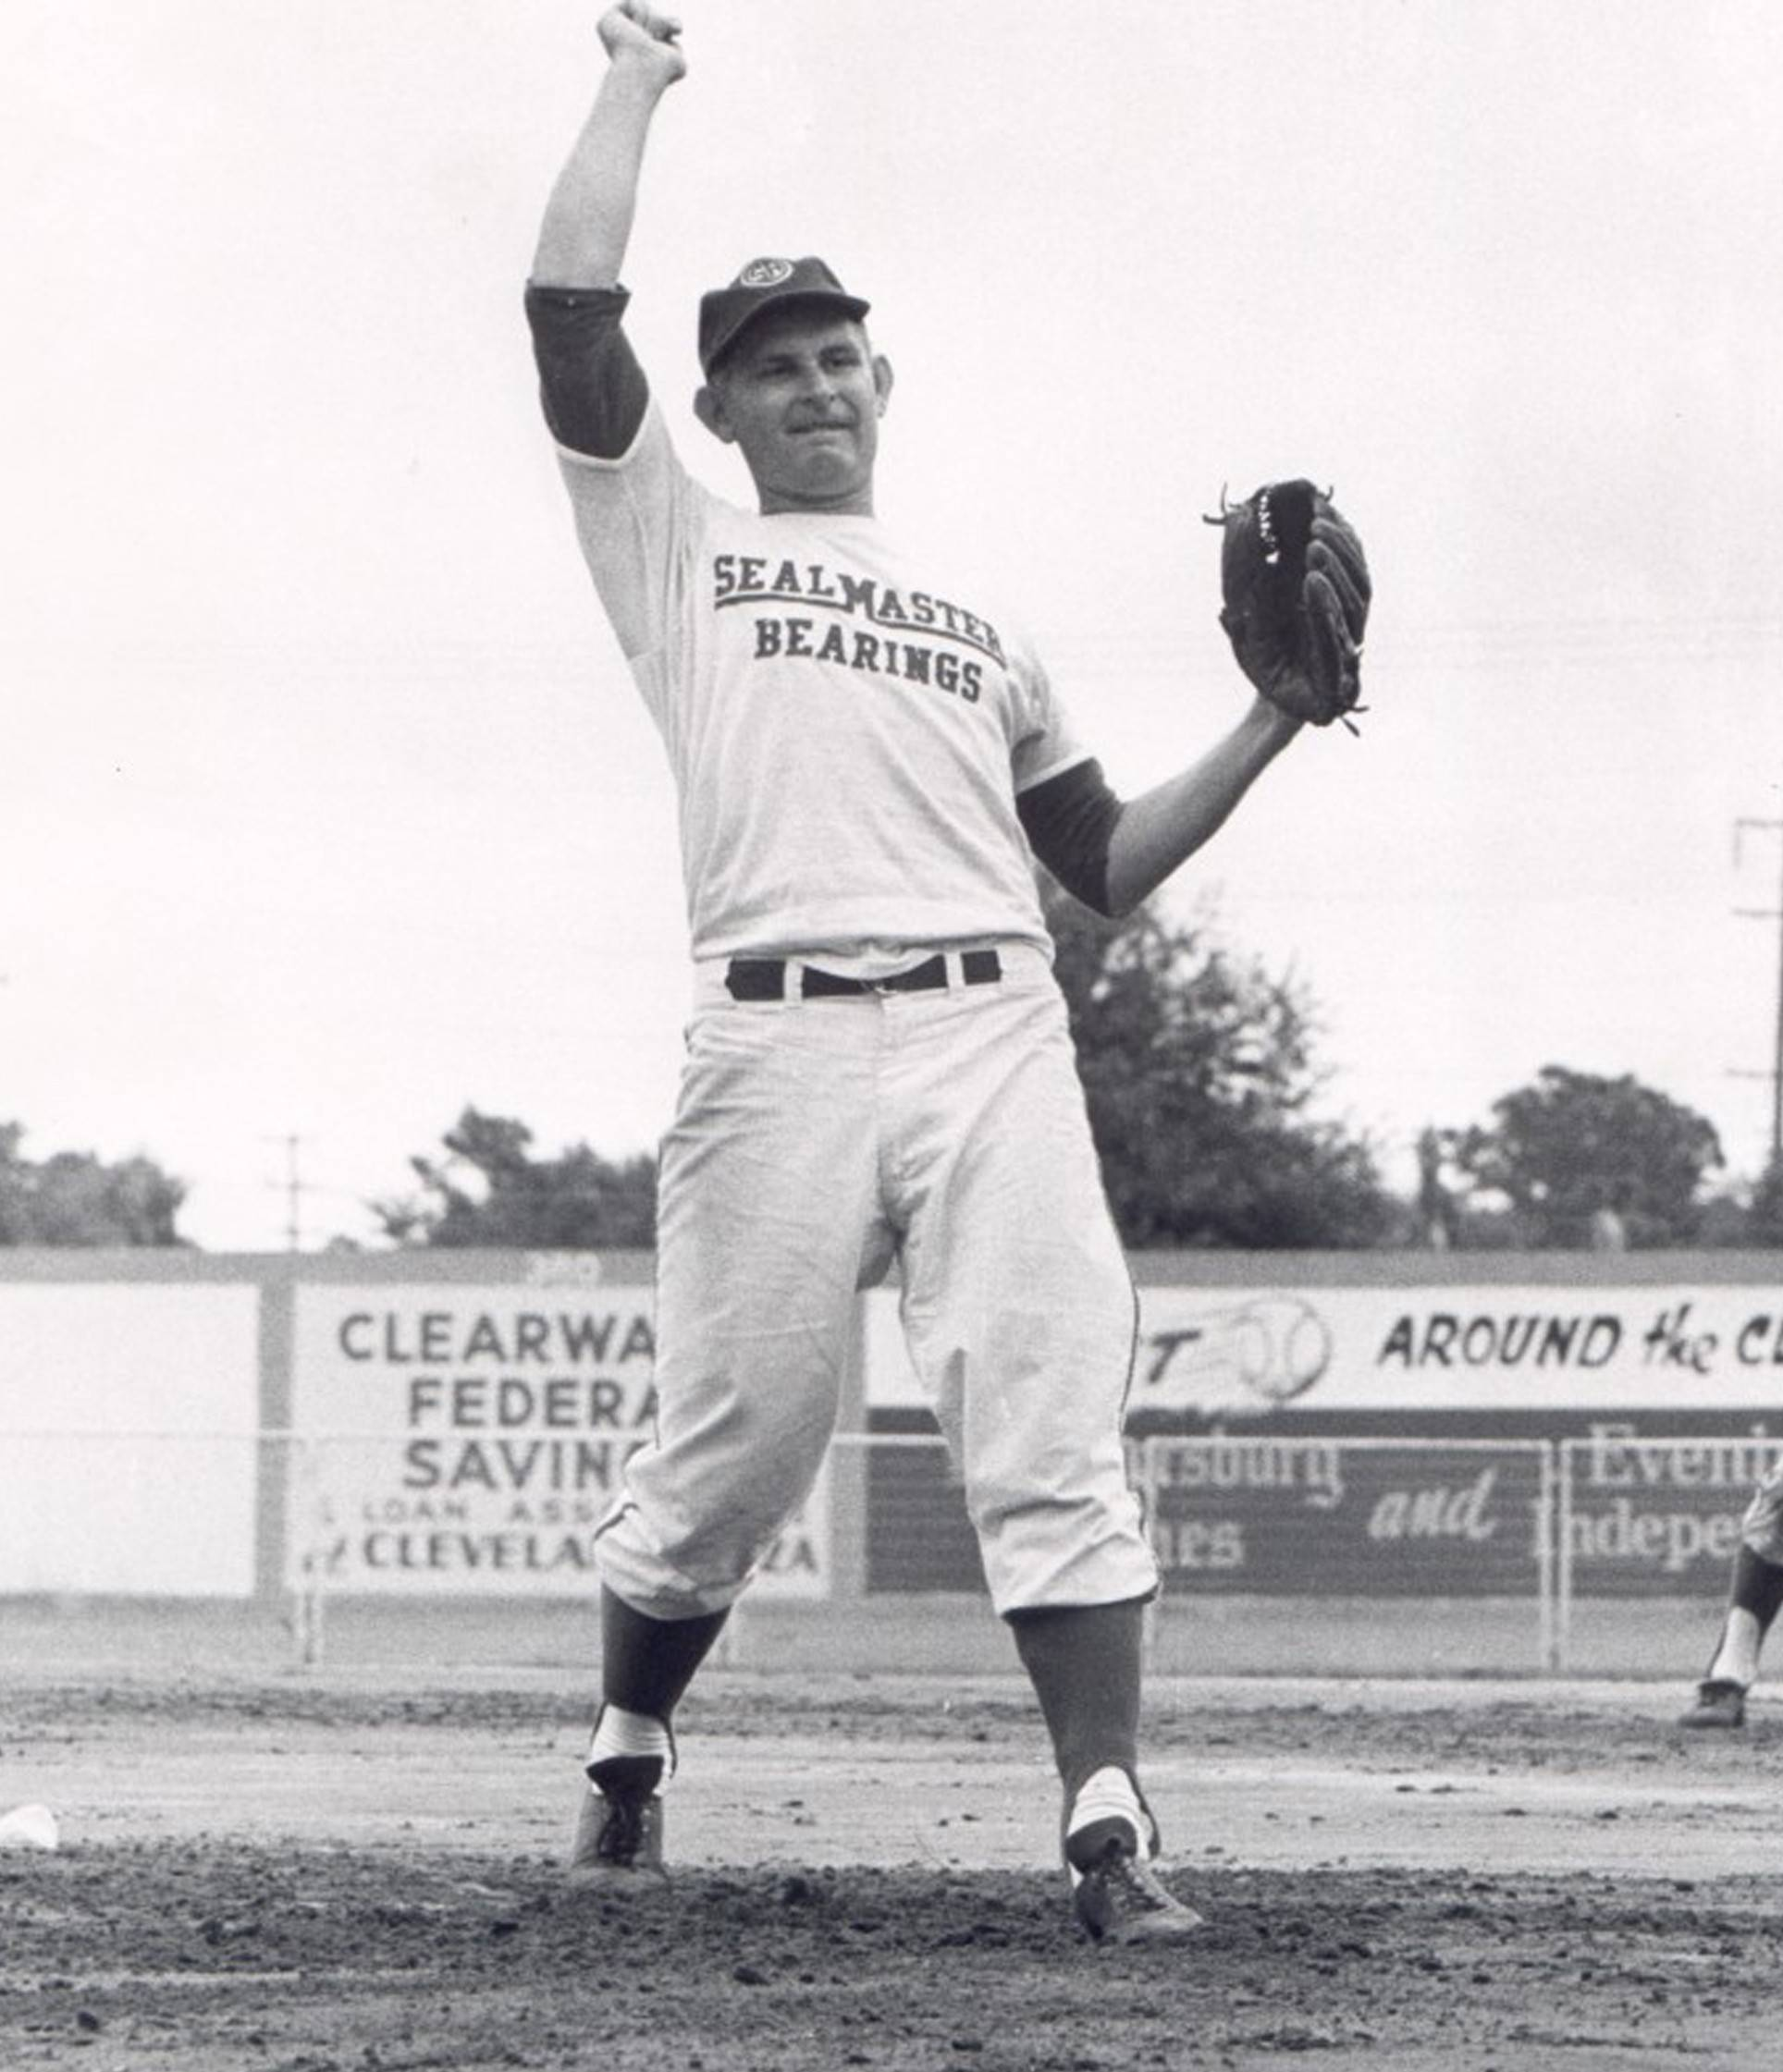 Hall of Fame pitcher Harvey Sterkel will have a ball field named in his honor at Stuart Sports Complex Tuesday, June 10. Sterkel starred for the Aurora Sealmasters and Home Savings & Loan for 21 years and is regarded as one the all-time bests in fastpitch softball.